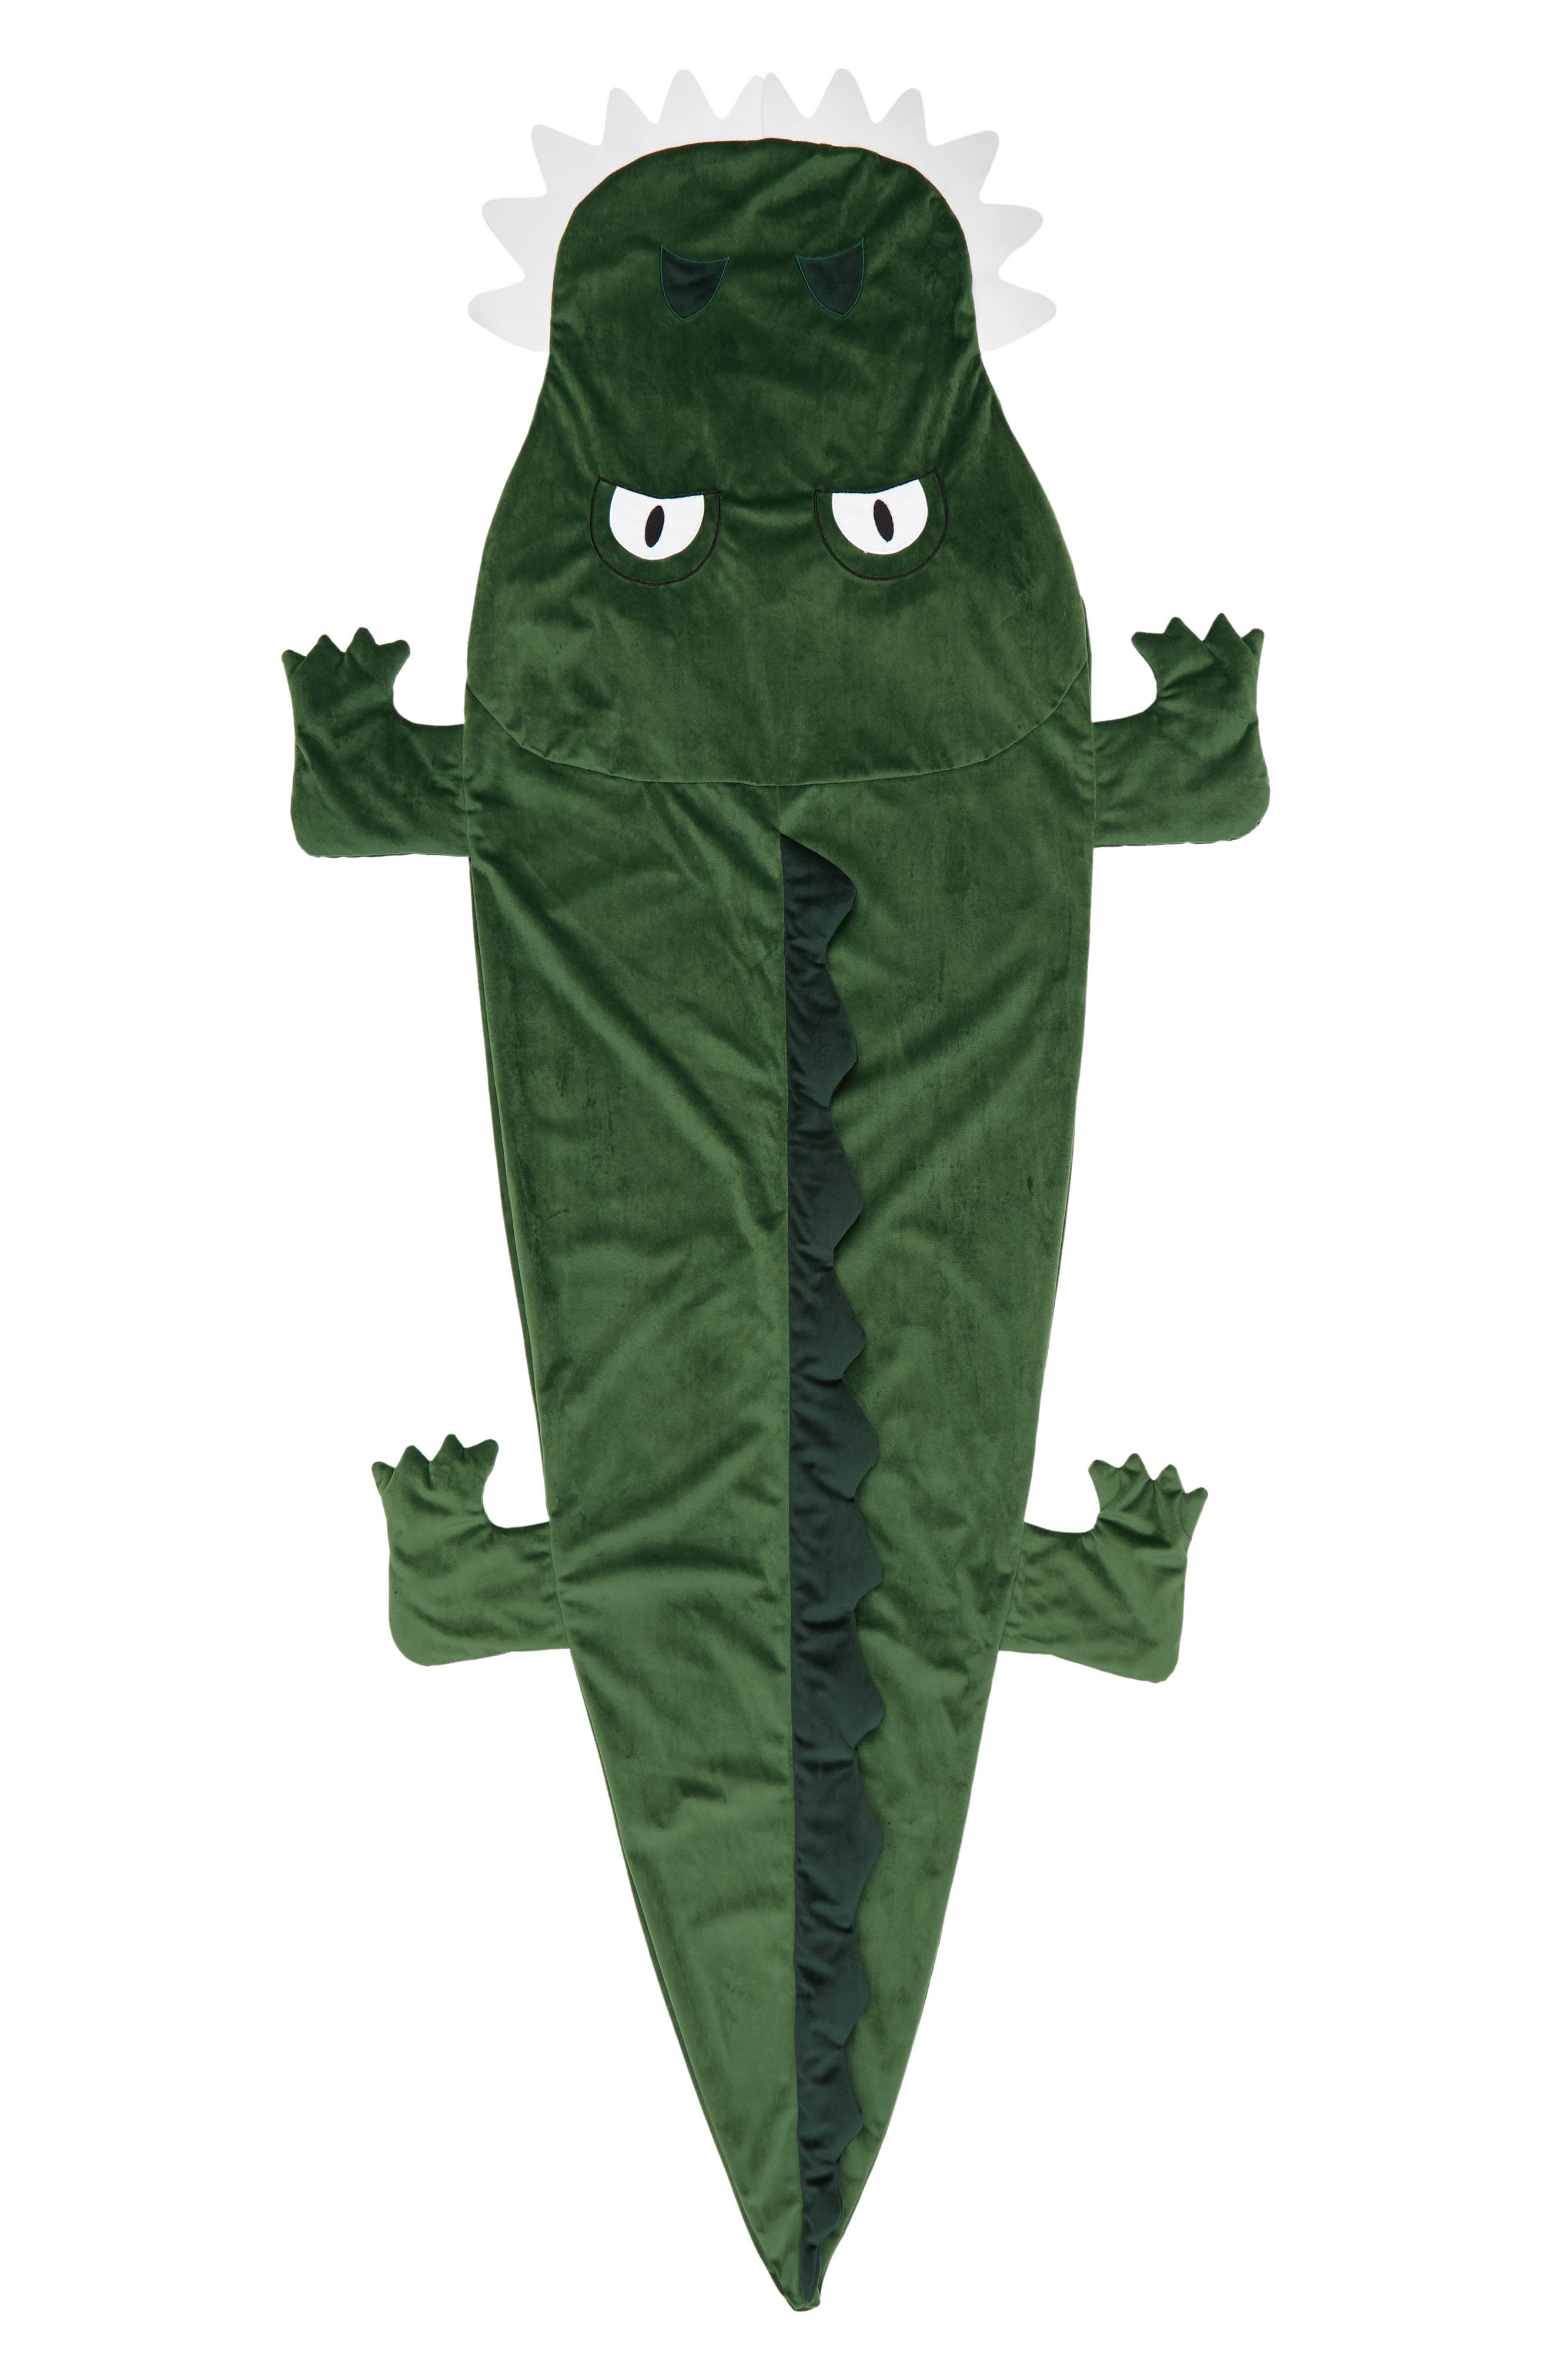 Under One Sky Green Alligator Snuggle Sack Size One Size  Green